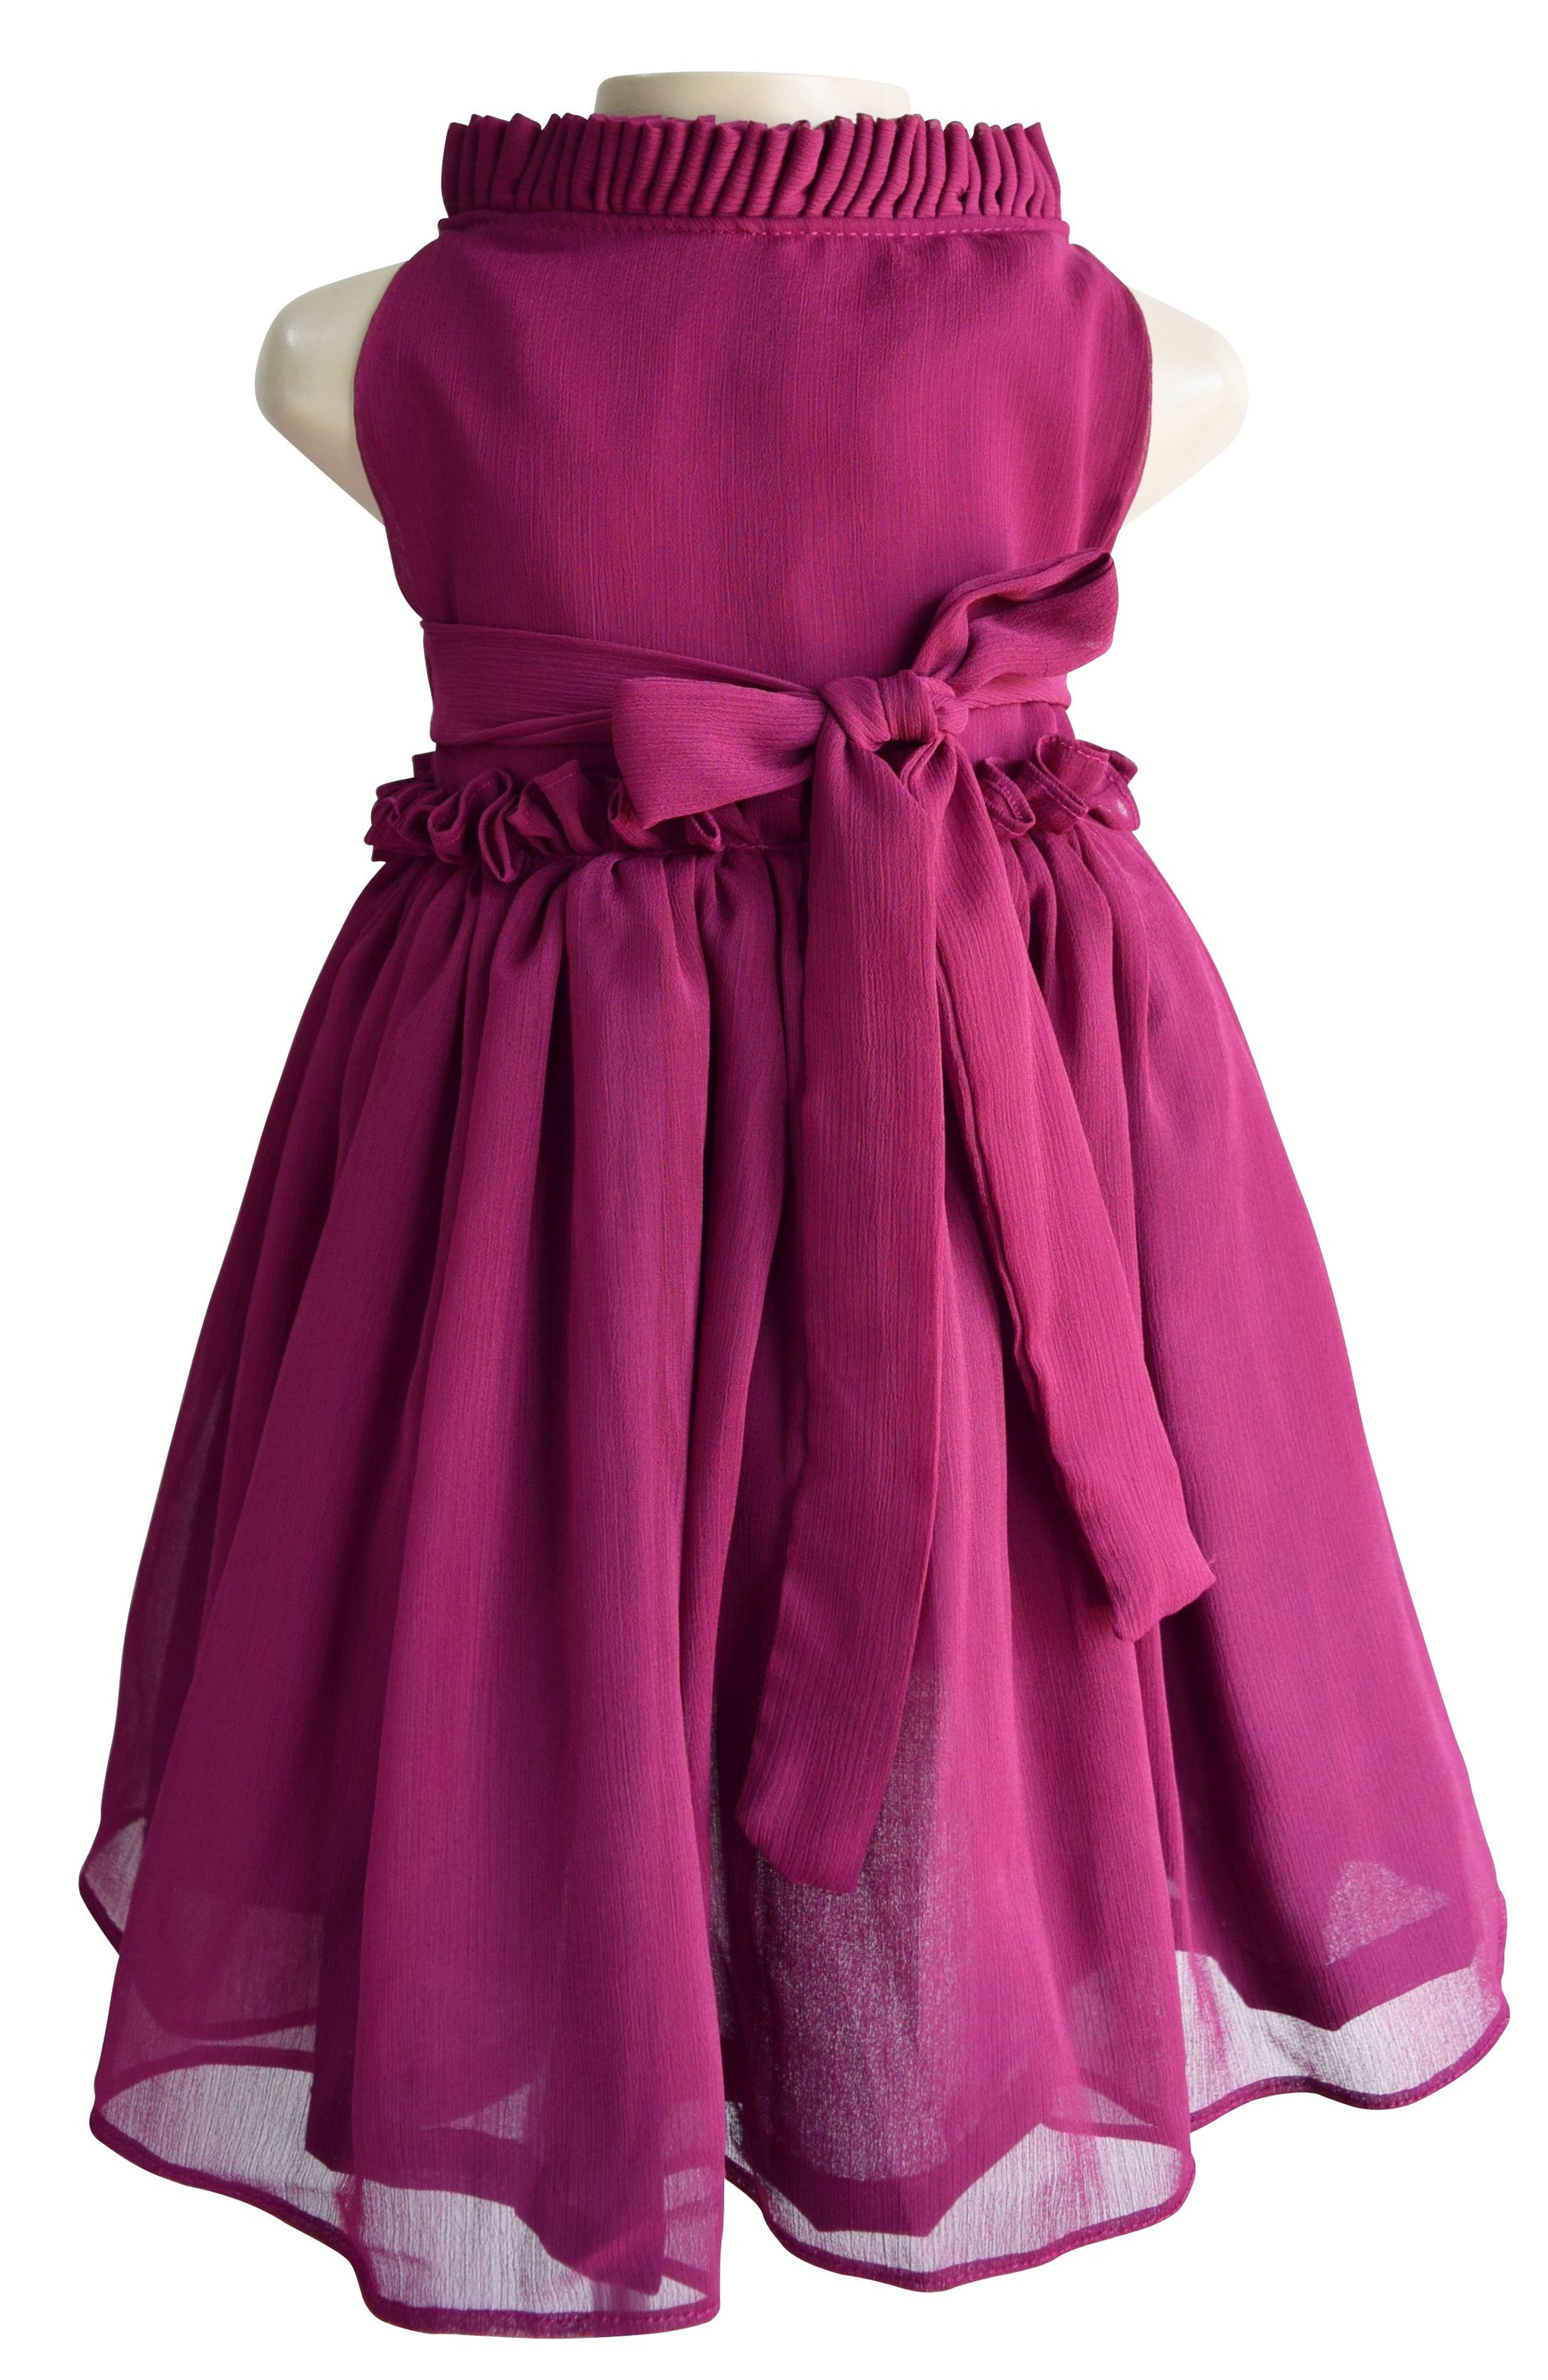 38d57291a Kids Party Dress_Faye Wine Ruffle Dress - faye